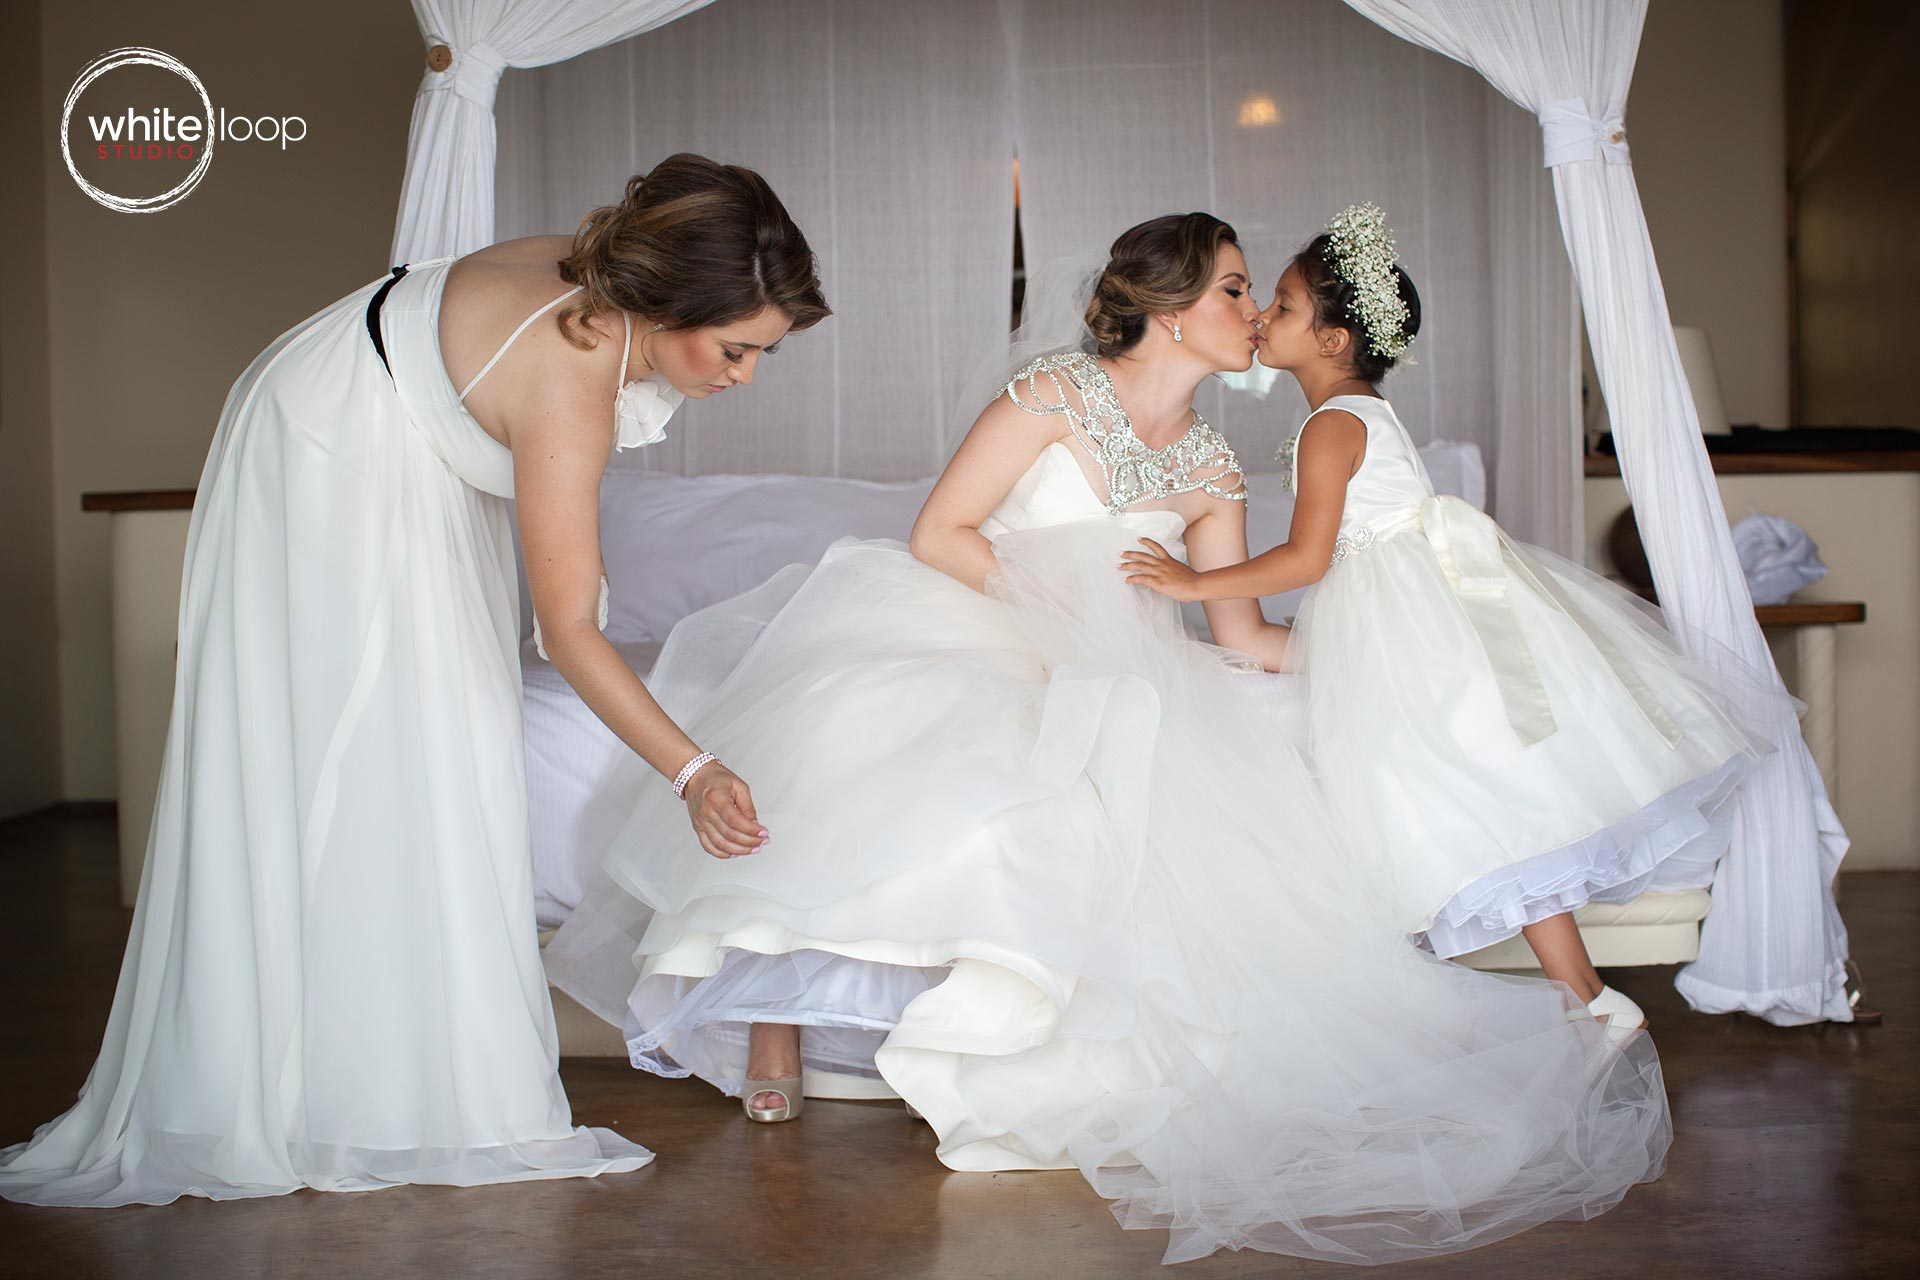 The bride is kissing her little bridesmaid with a maternal tenderness just before going to the church.